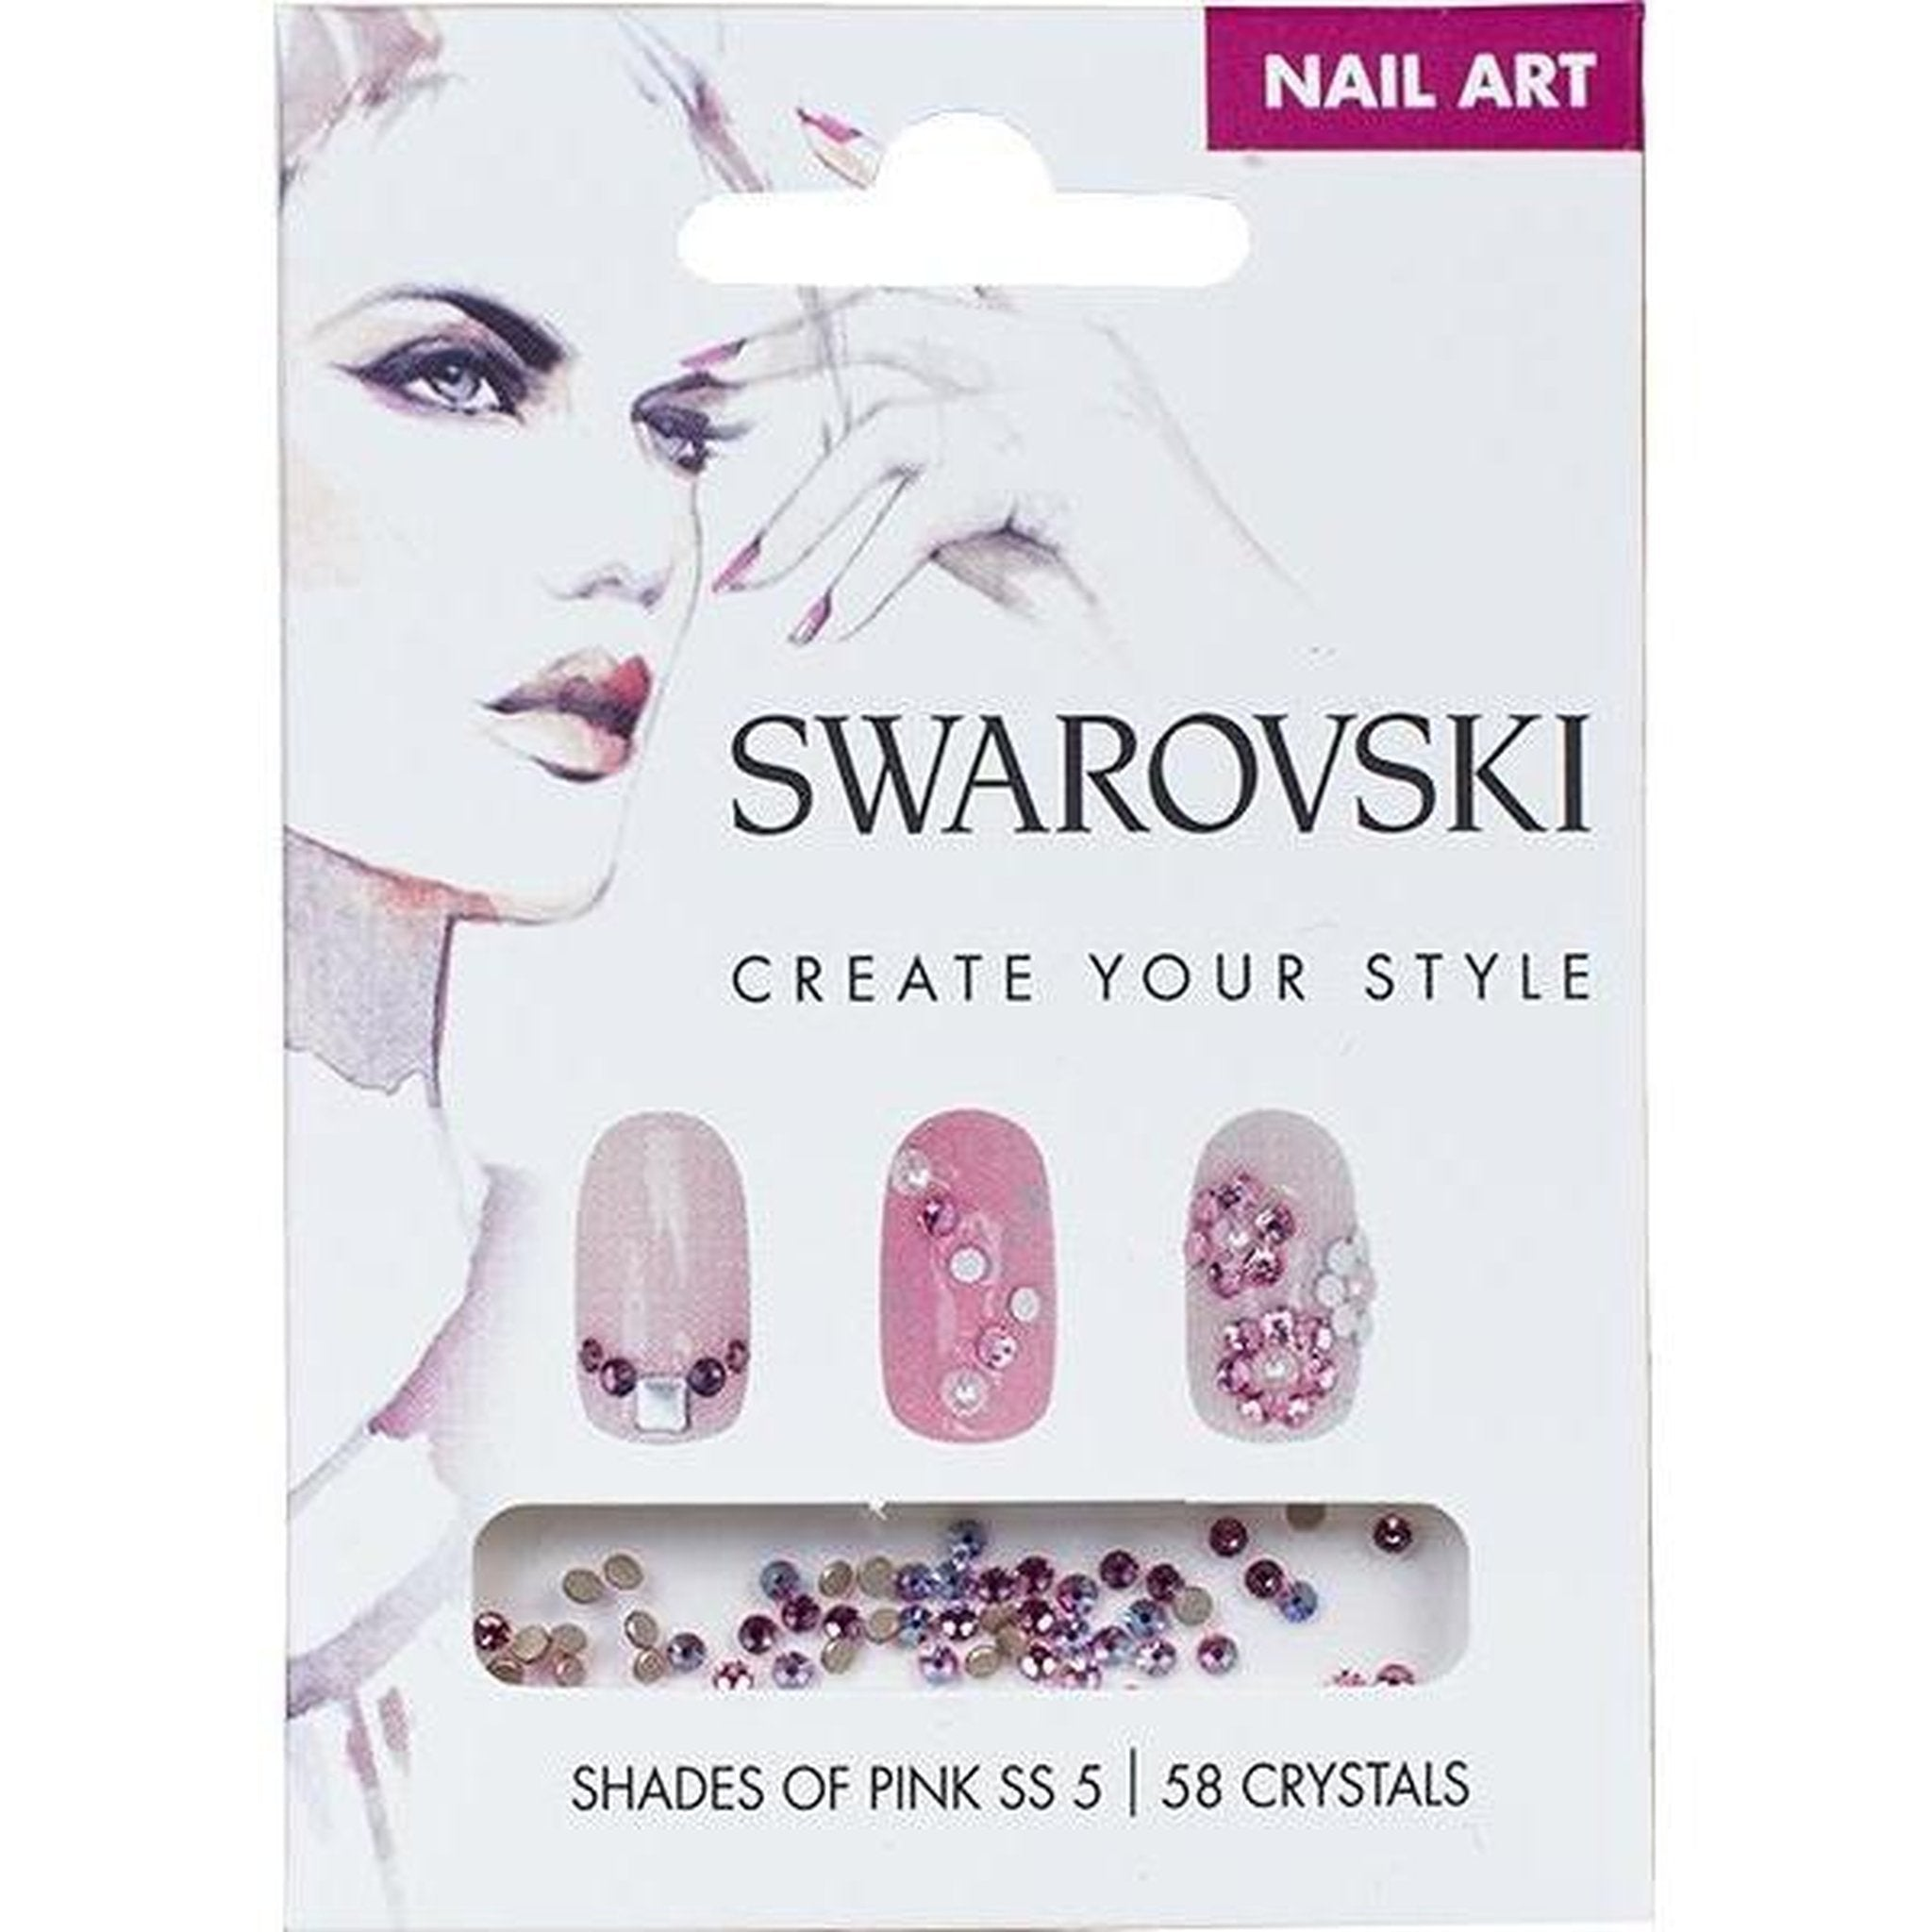 SWAROVSKI NAIL ART LOOSE CRYSTALS - PINK SS5-Gel Essentialz